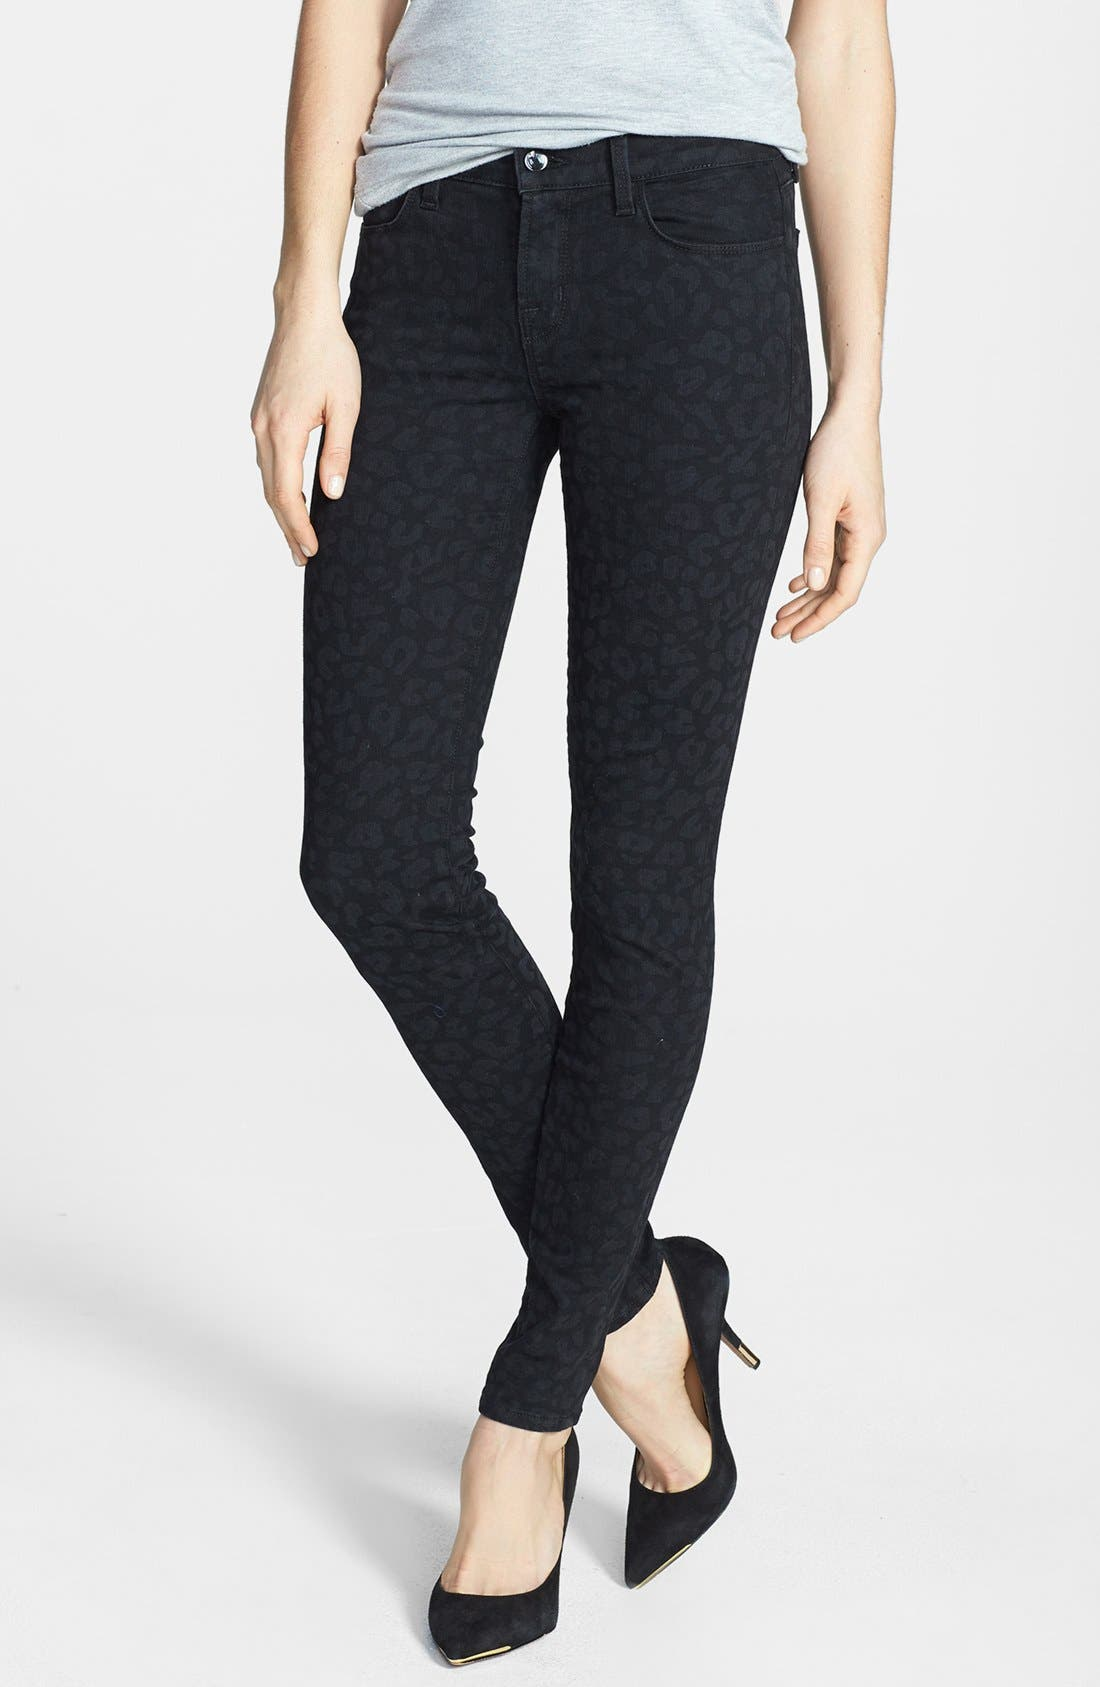 '620' Mid Rise Skinny Jeans,                             Main thumbnail 1, color,                             002